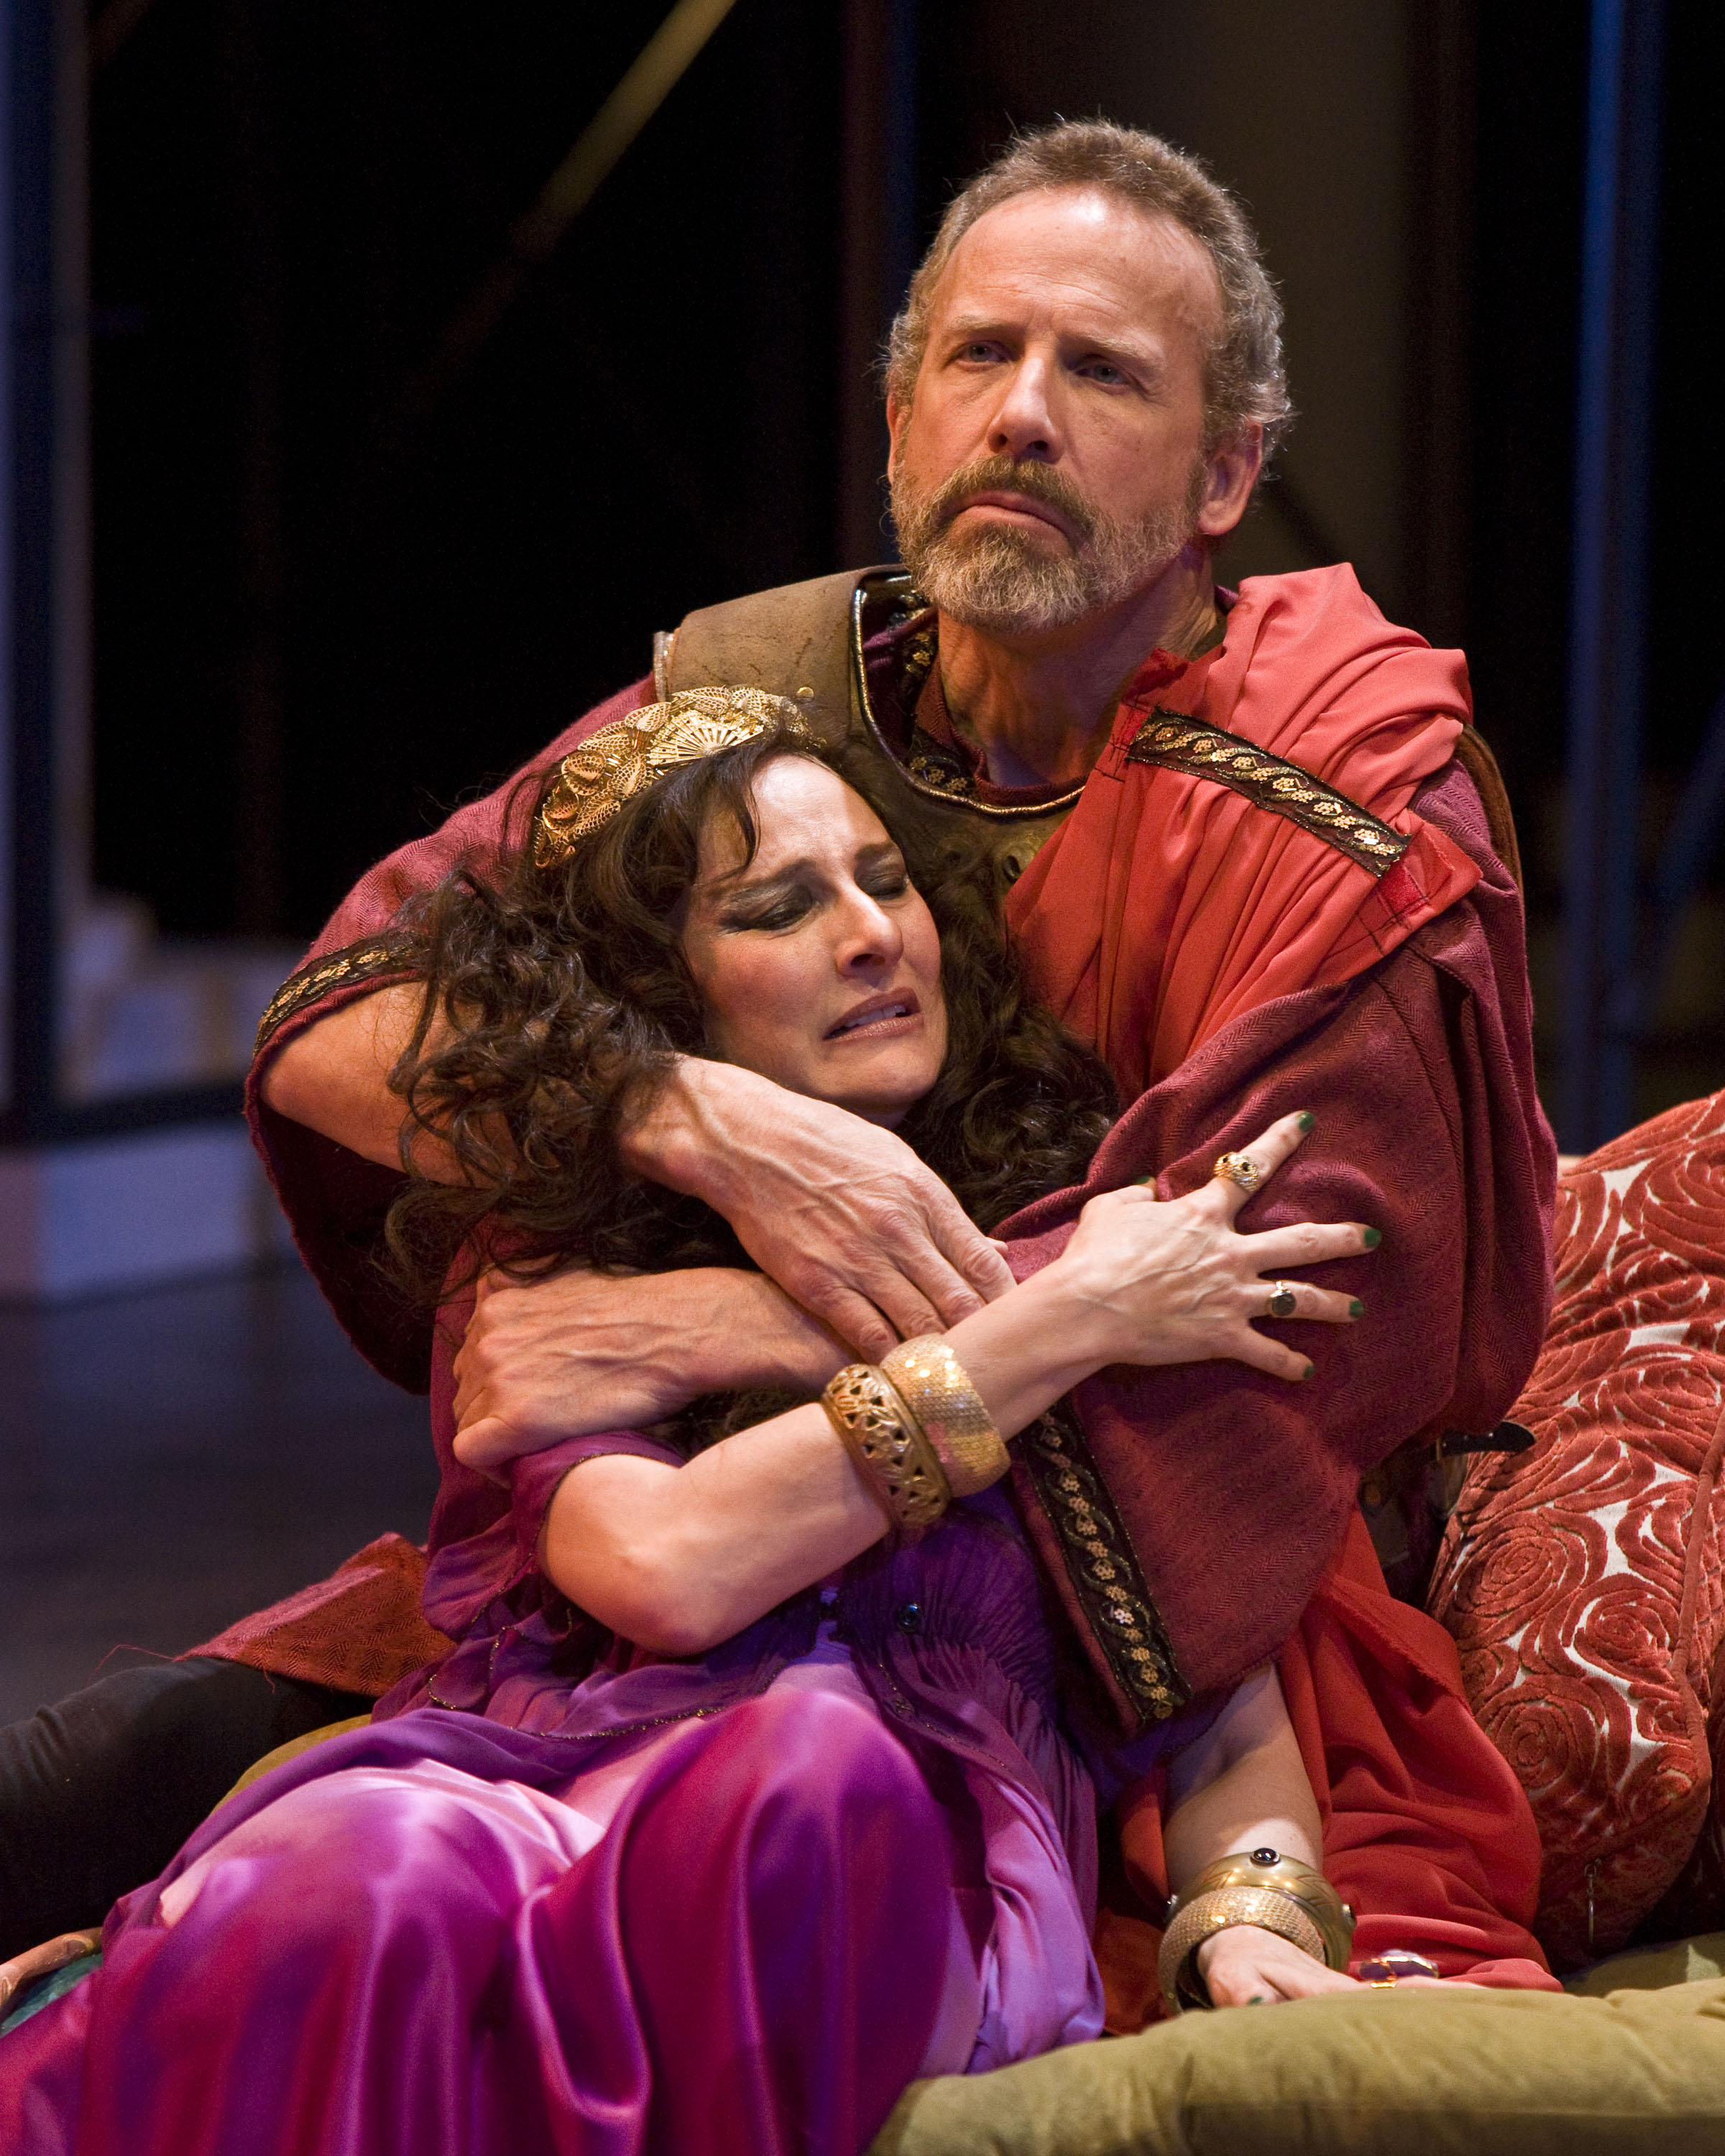 antony and cleopatra essays warehouse essay warehouse essay  los angeles theater review antony and cleopatra a noise in los angeles theater review antony and